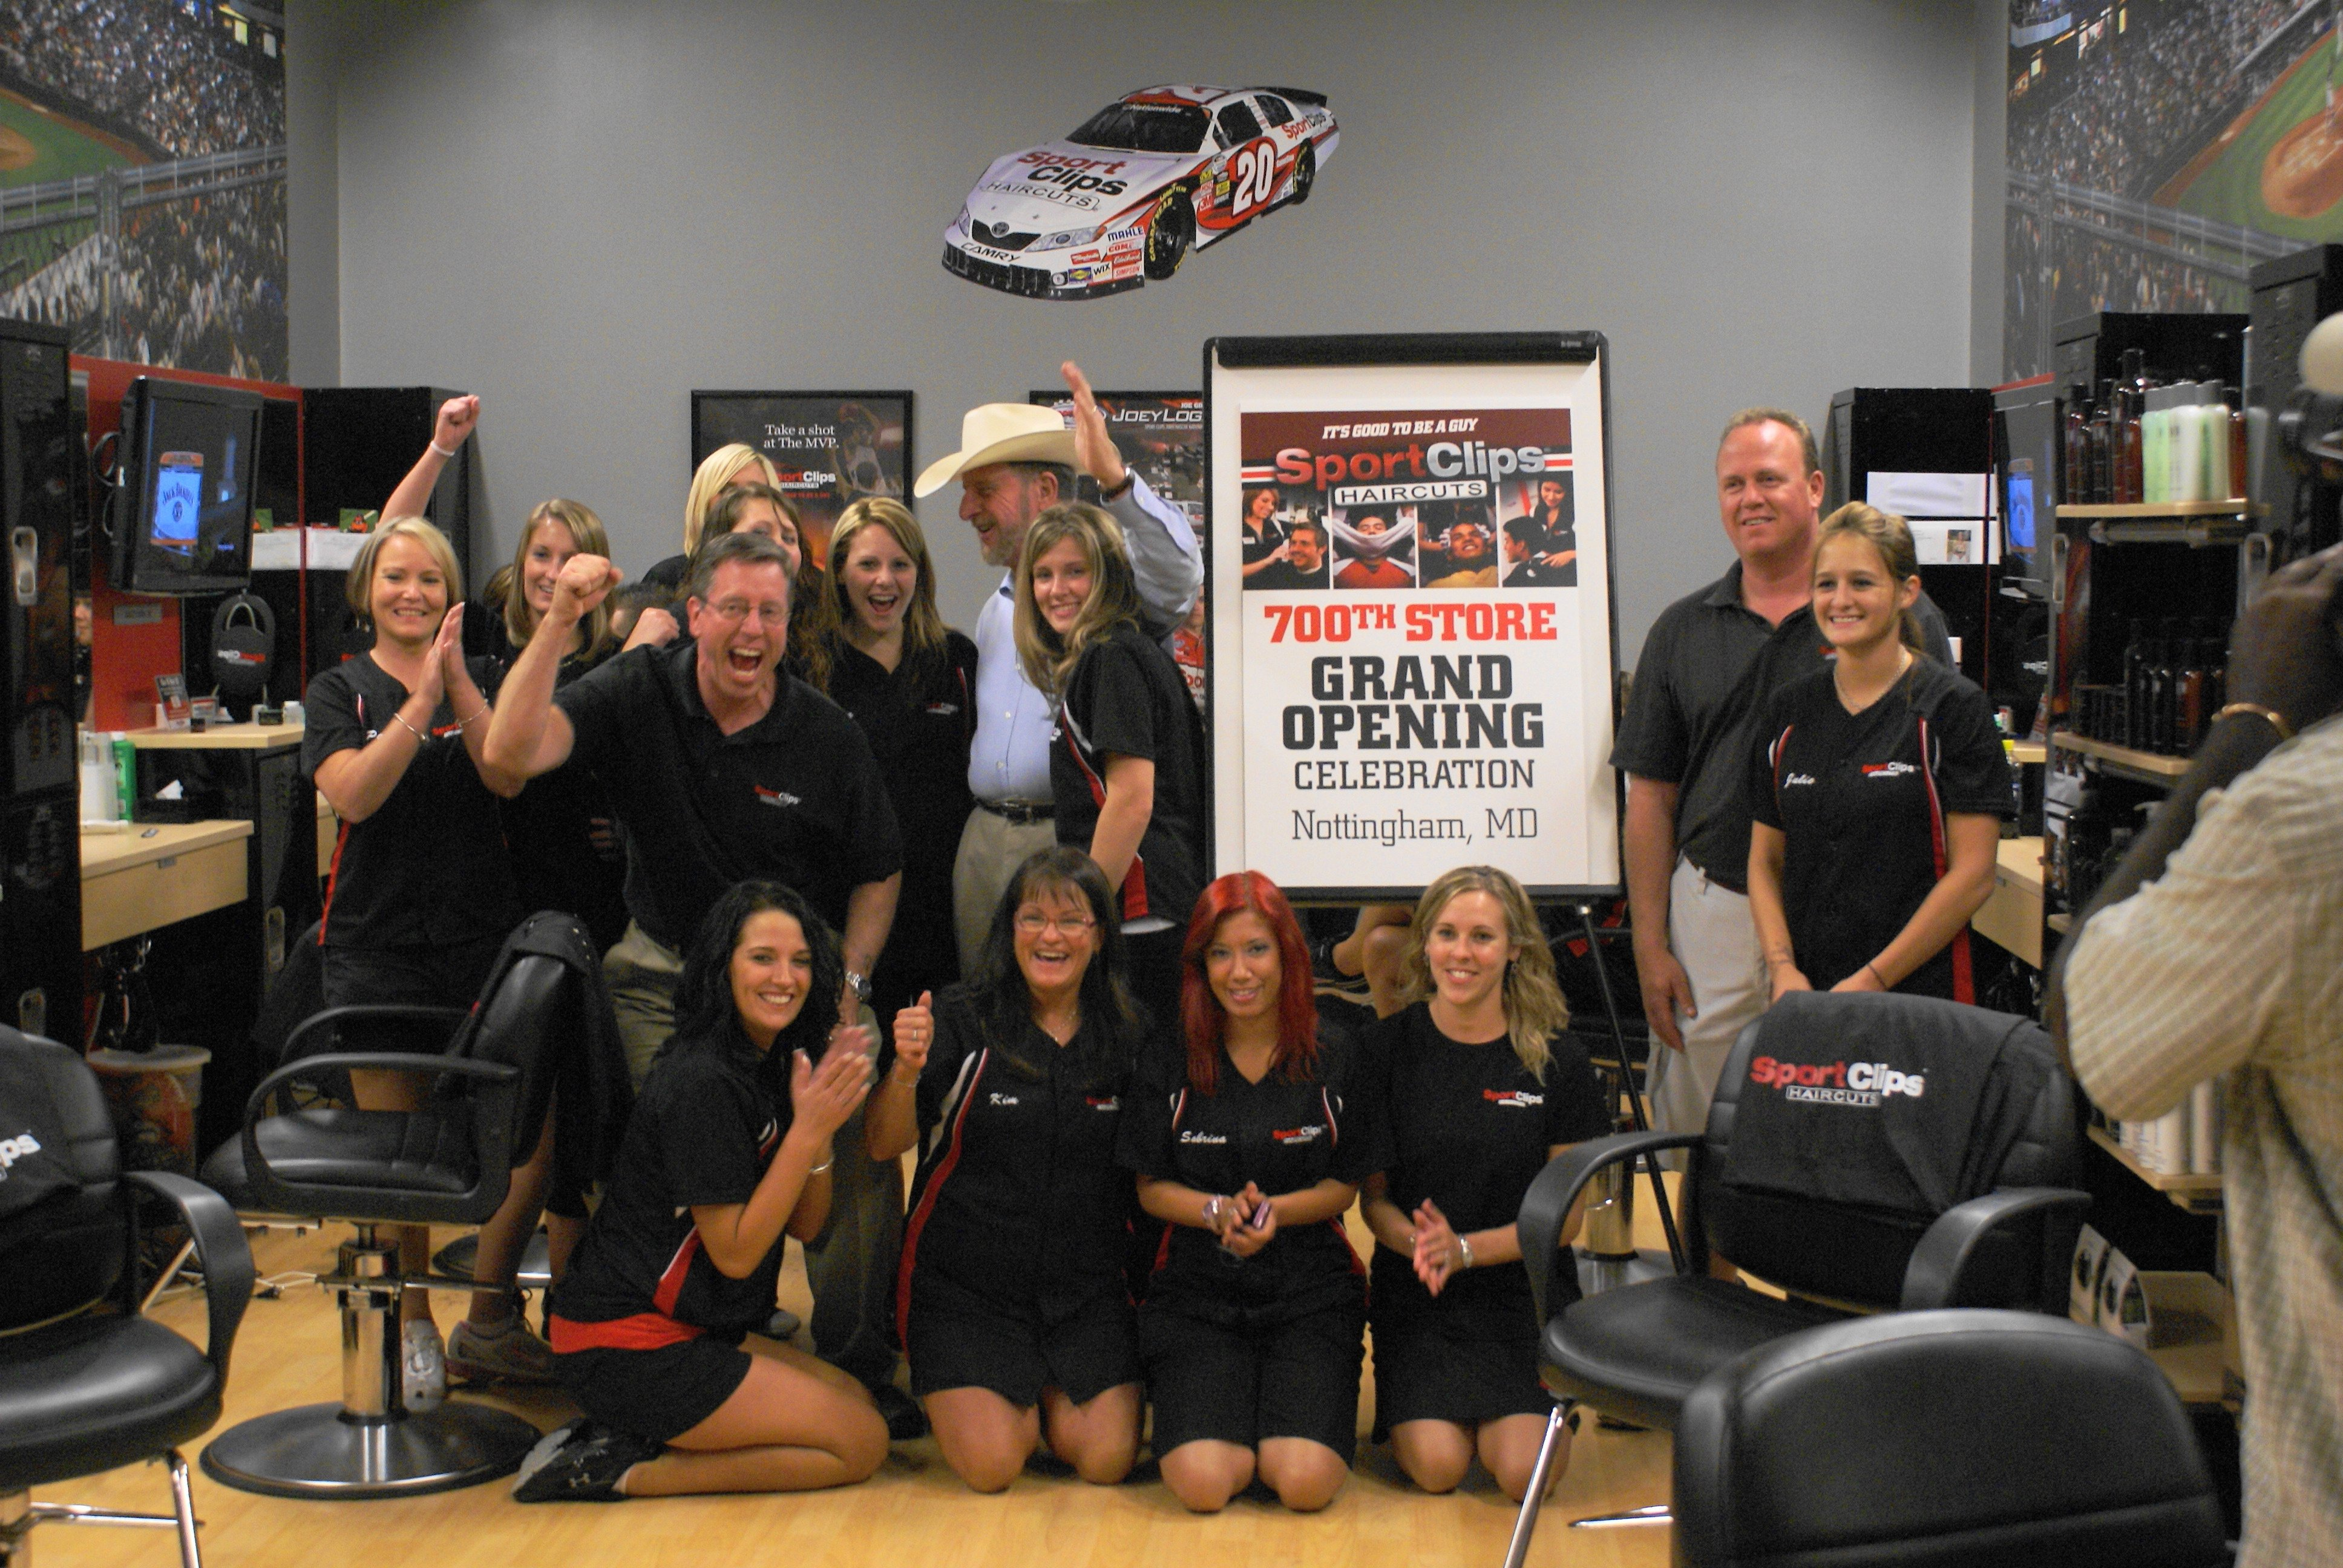 clips sport sportclips 700th opens location record salon team